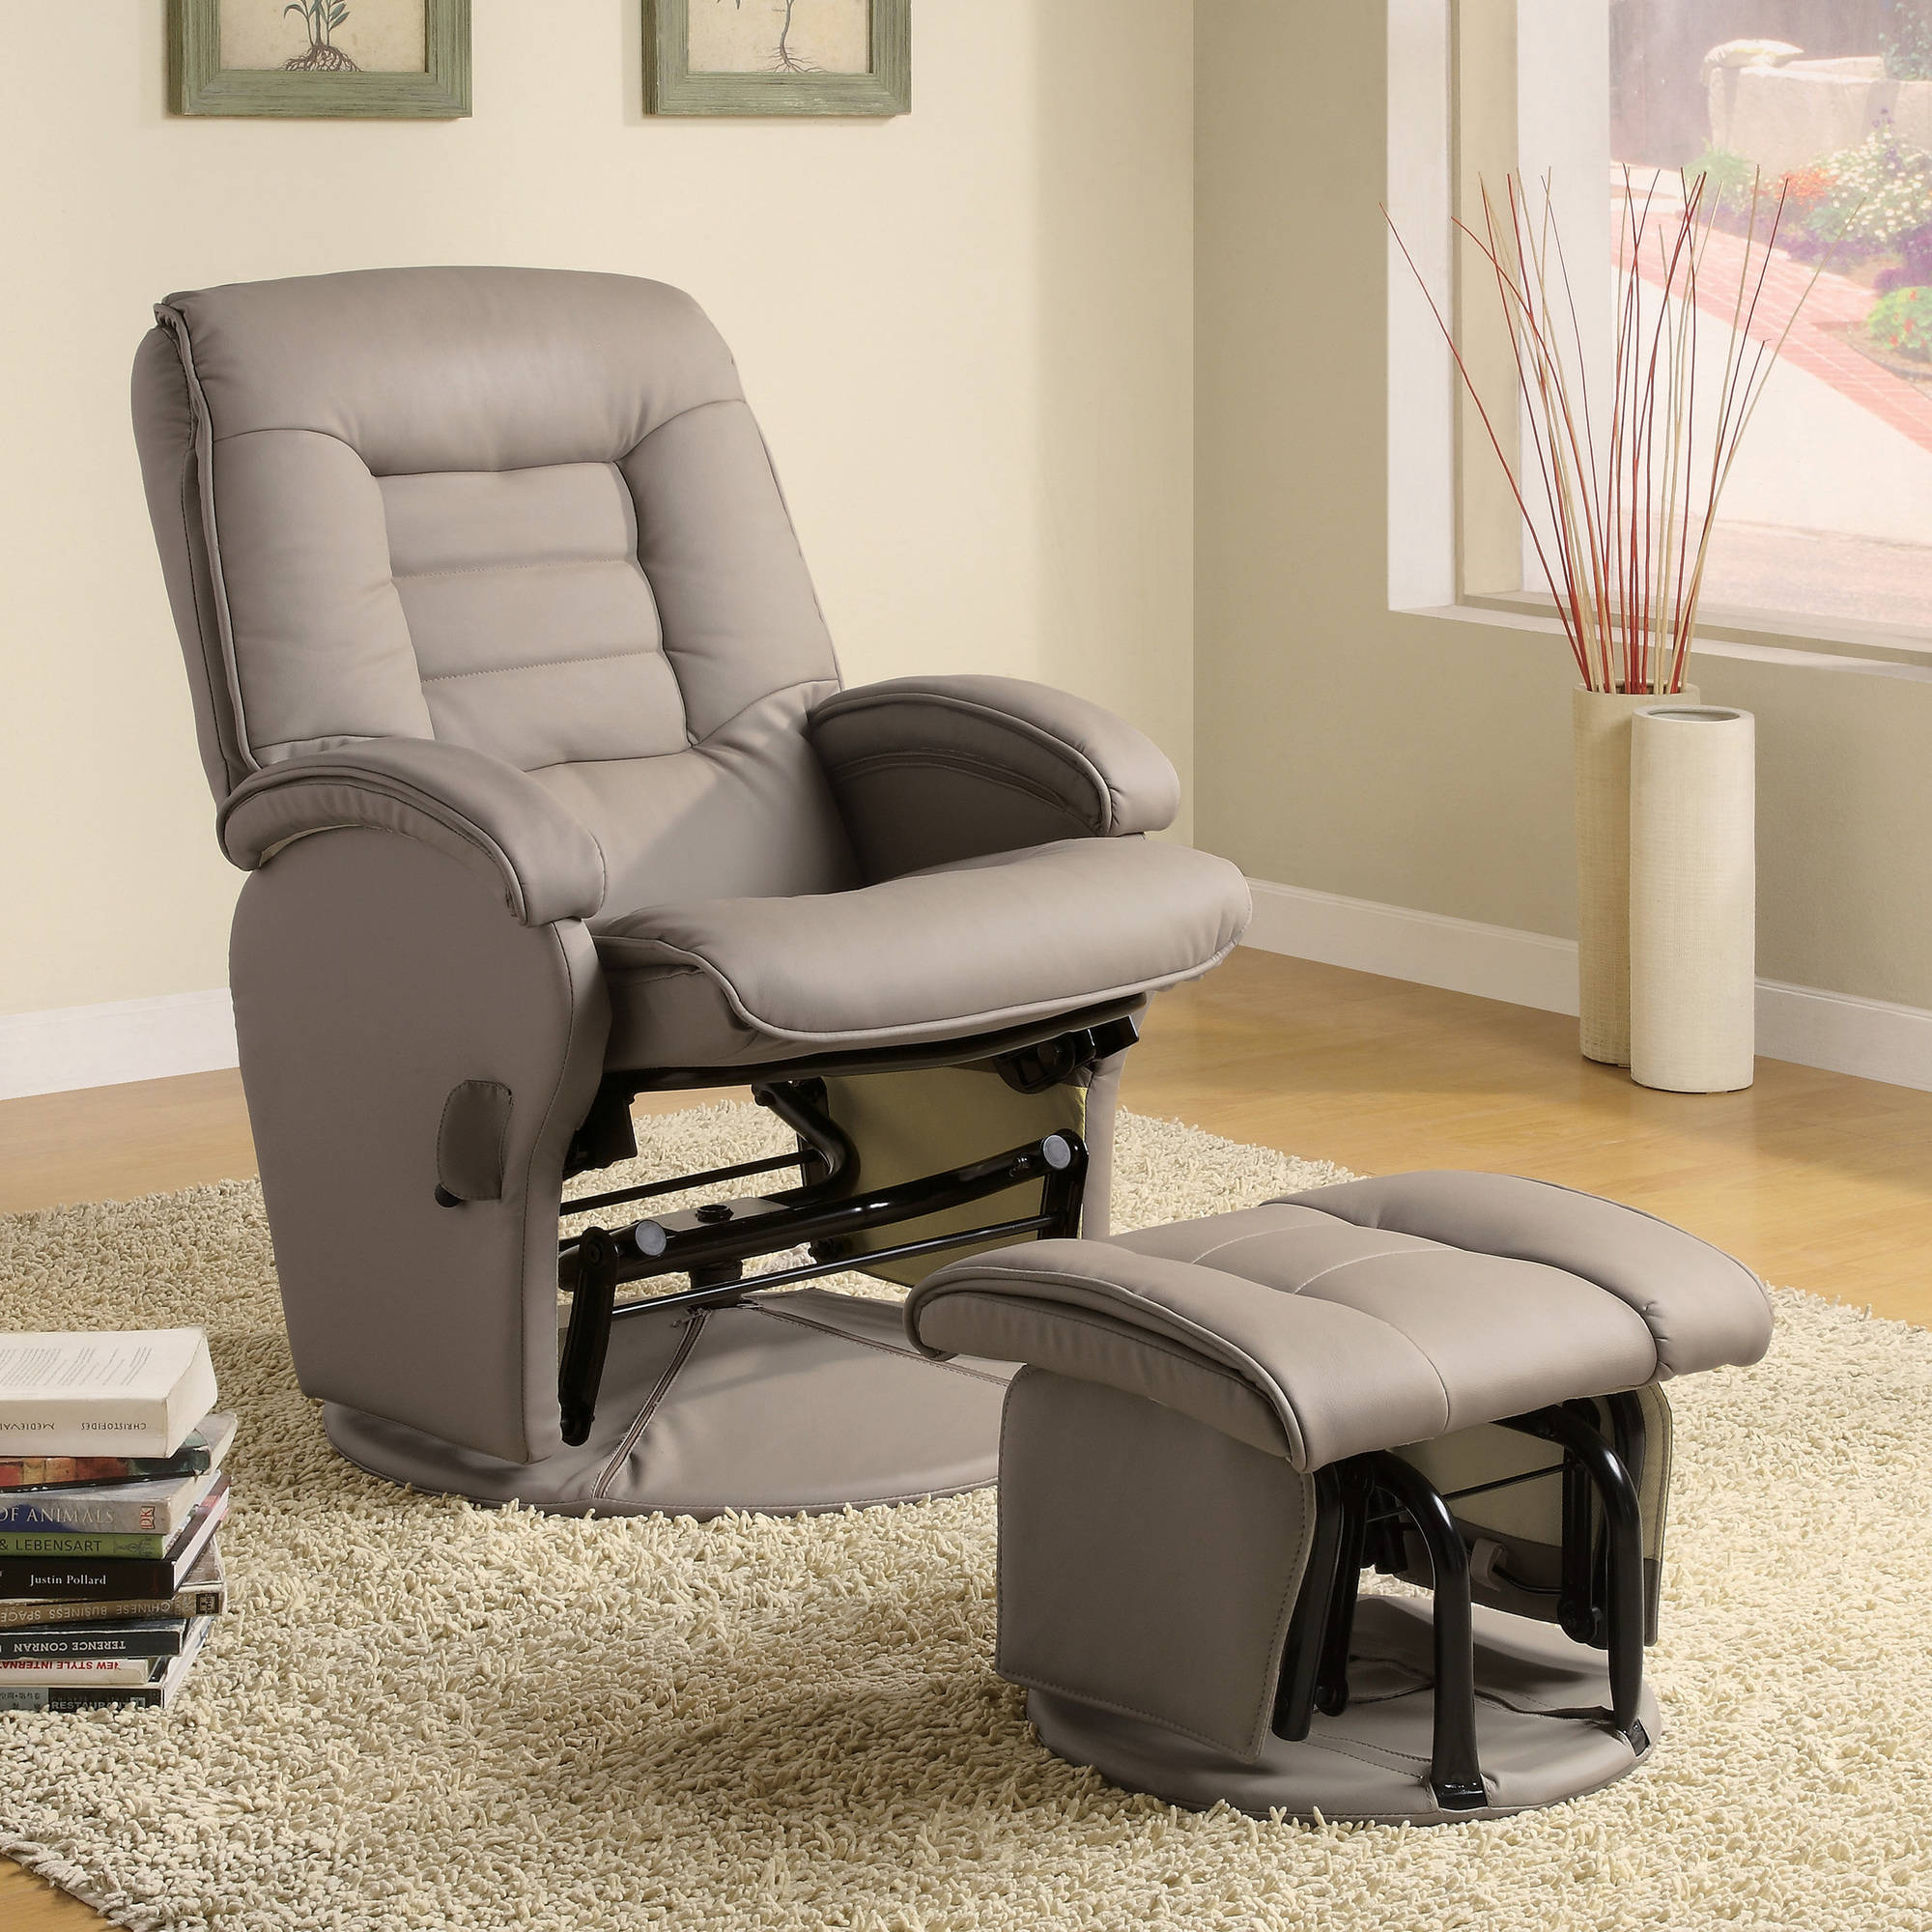 Coaster Double Padded Glider and Ottoman in Bone Walmart